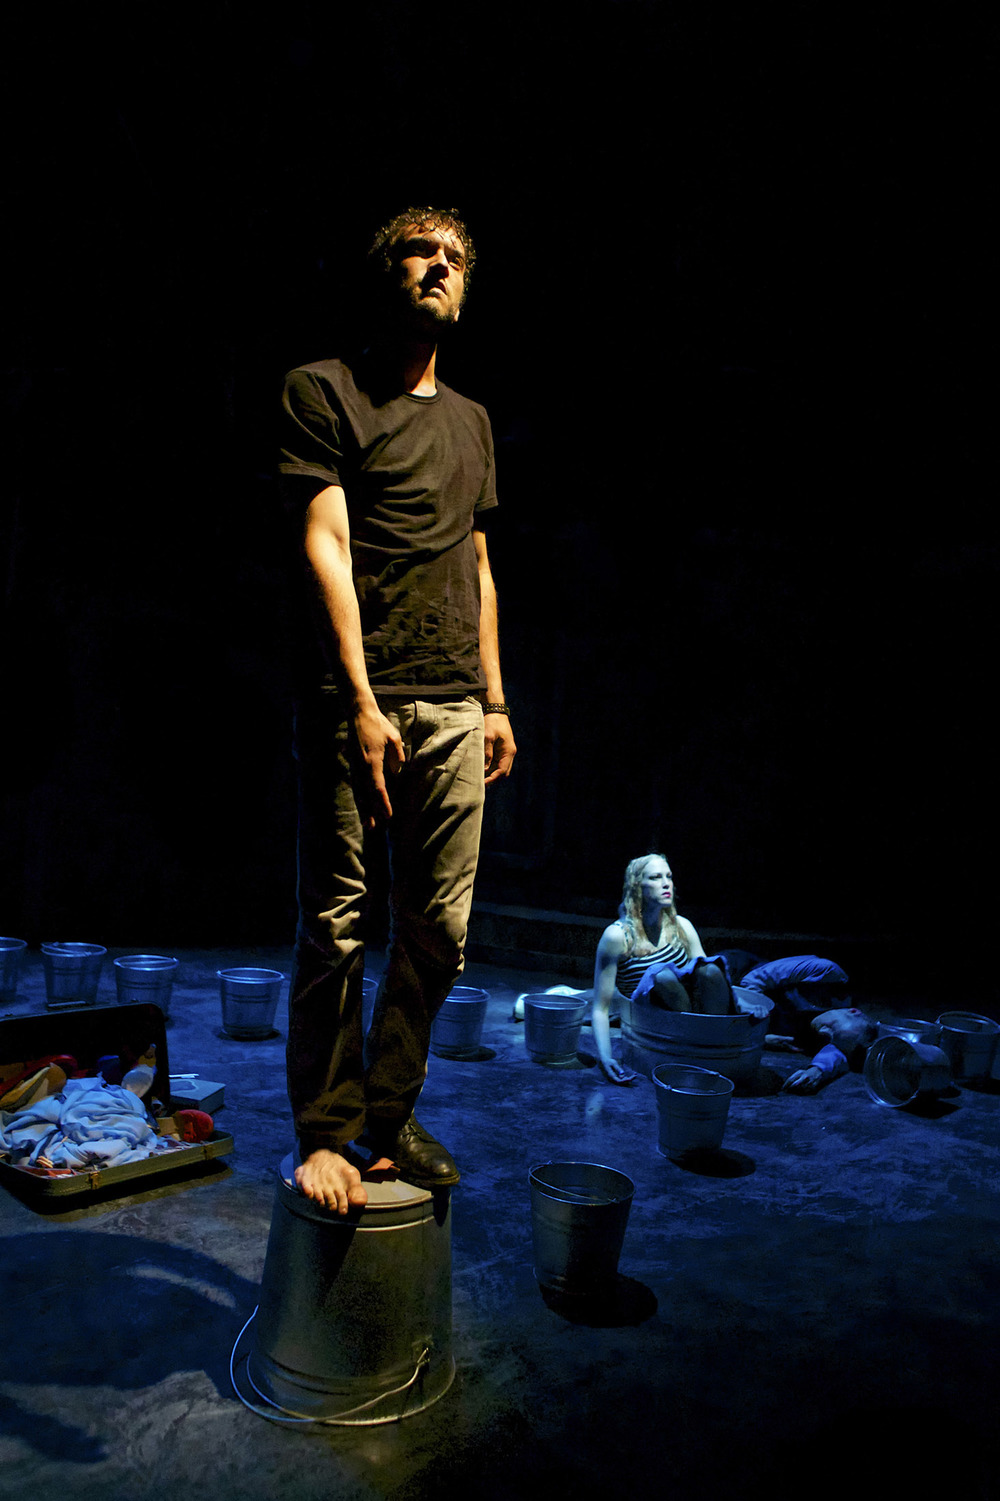 eurydice-shotgun-players-erika-chong-shuch-allen-willner-rising.jpg